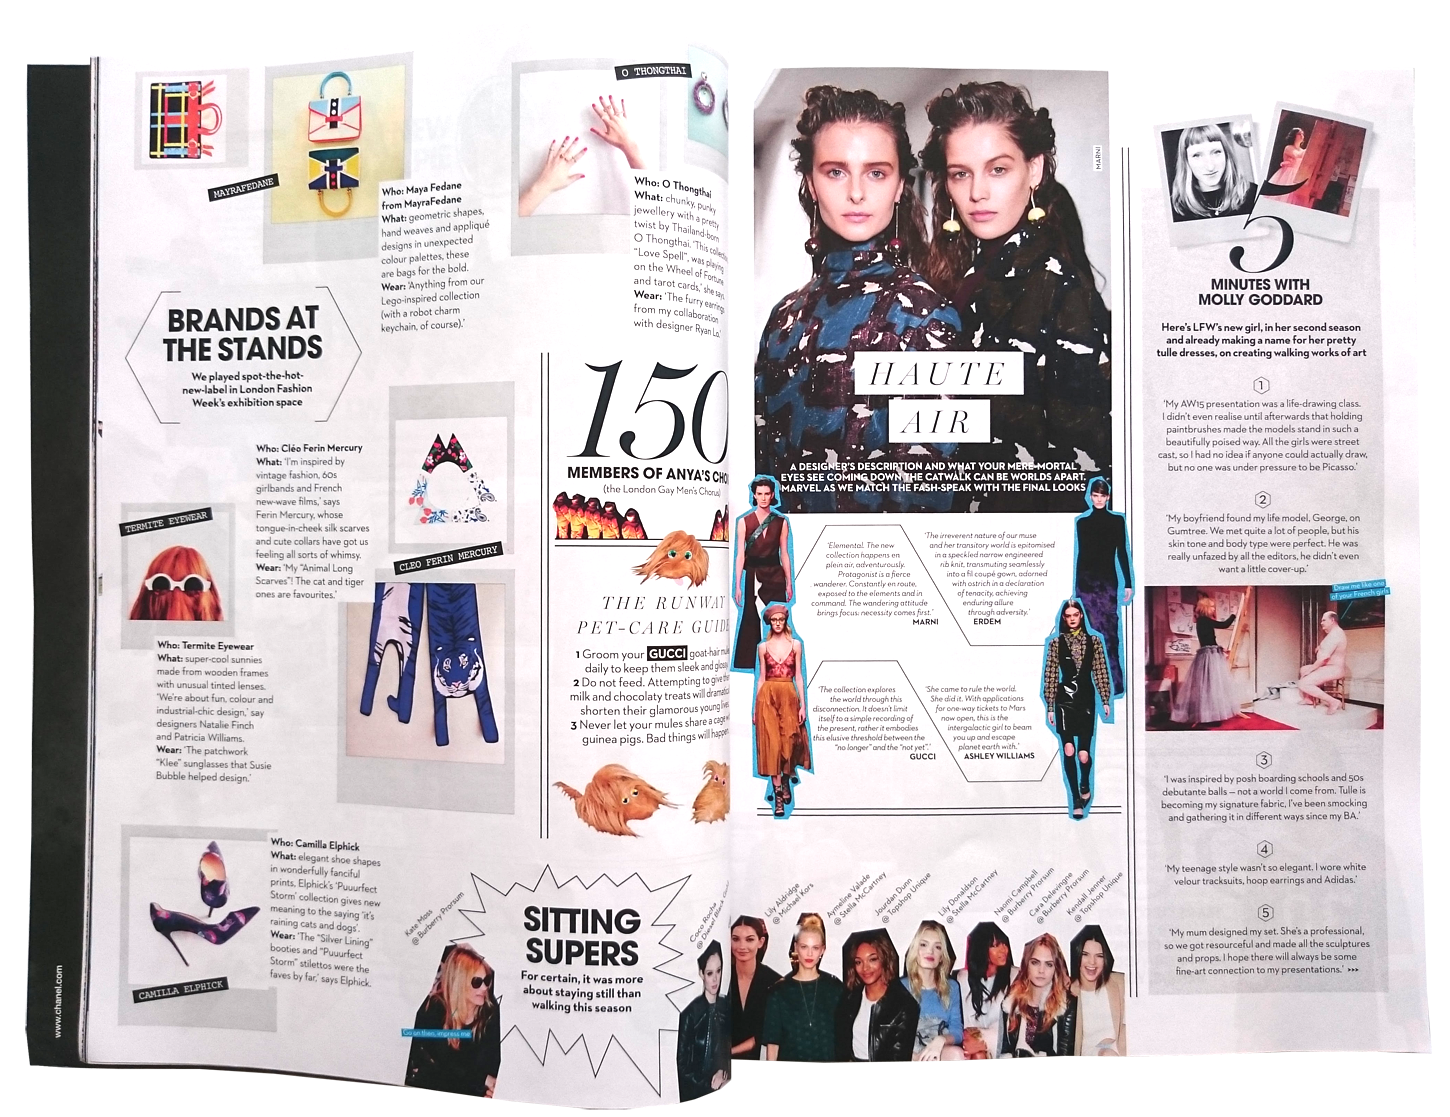 marie-claire-runway-brands-at-the-stands-article.png